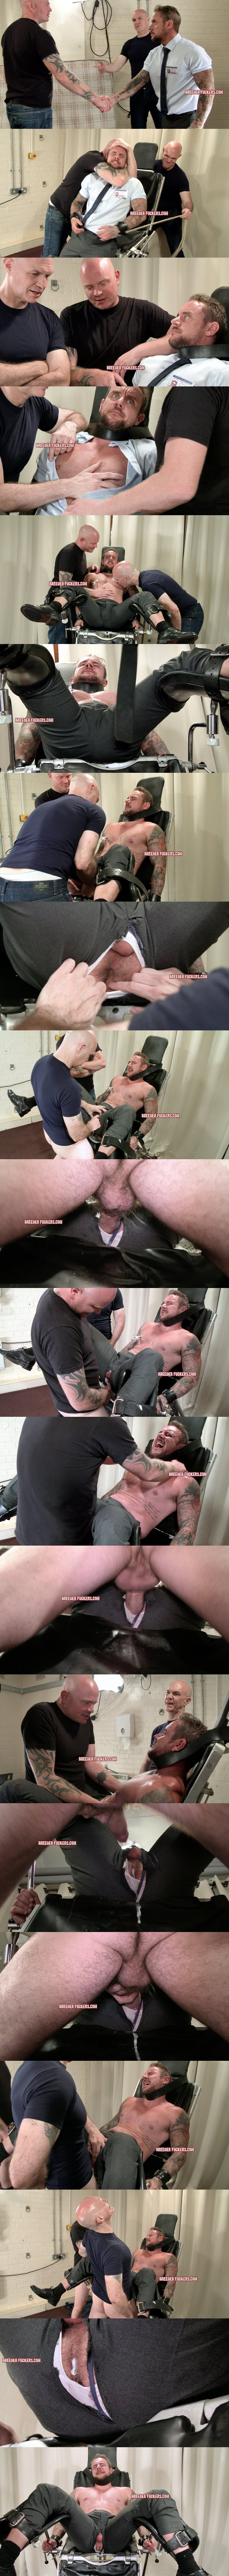 Masculine straight hunk Ian gets his virgin ass popped up by creepy masters Adrian and Dave at Breederfuckers 02